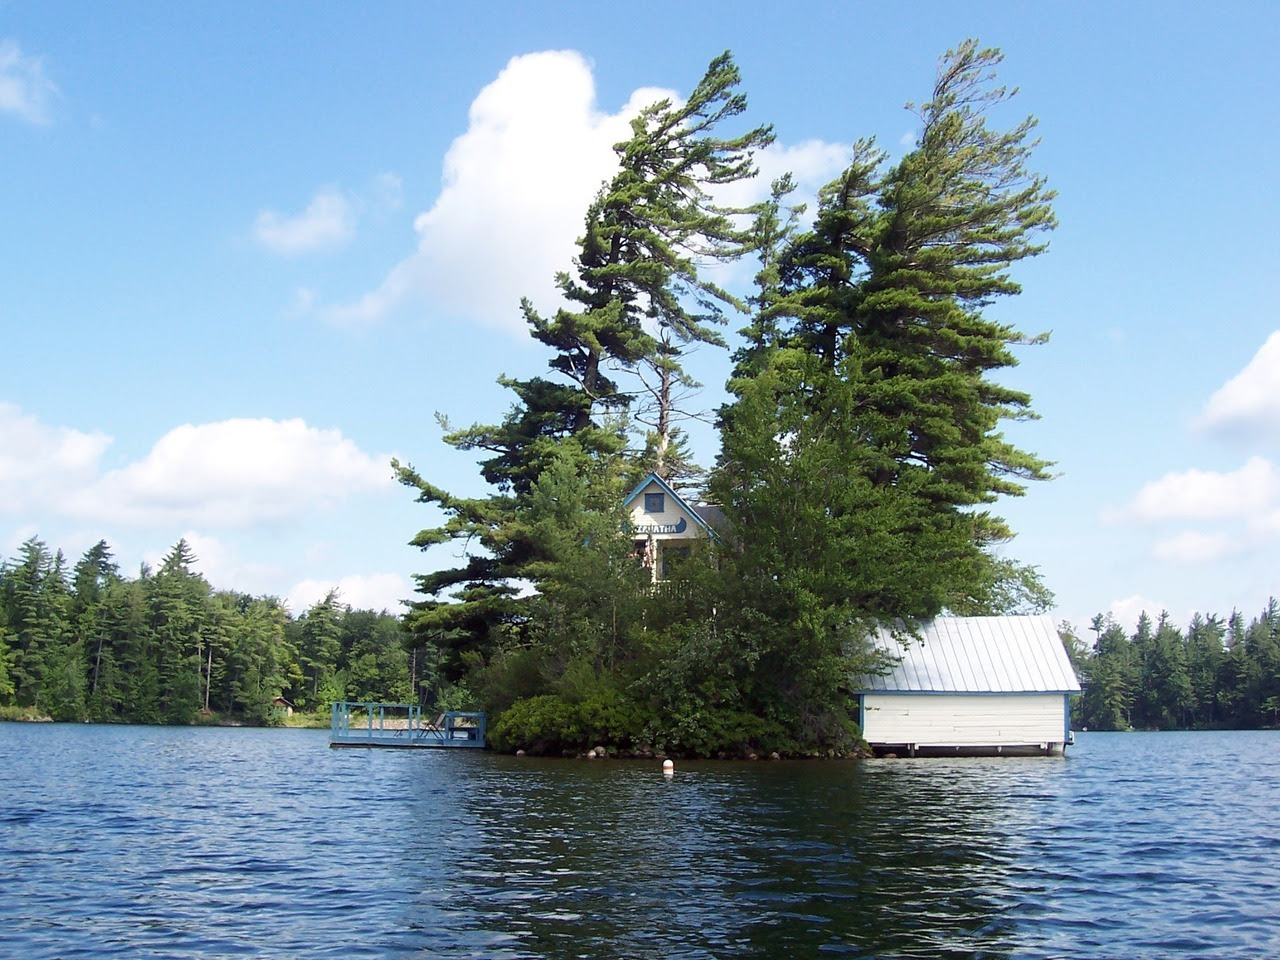 Camp Hiawatha and boathouse on Star Lake, New York Submitted by Joe DaBoll-Lavoie / @jdaboll6